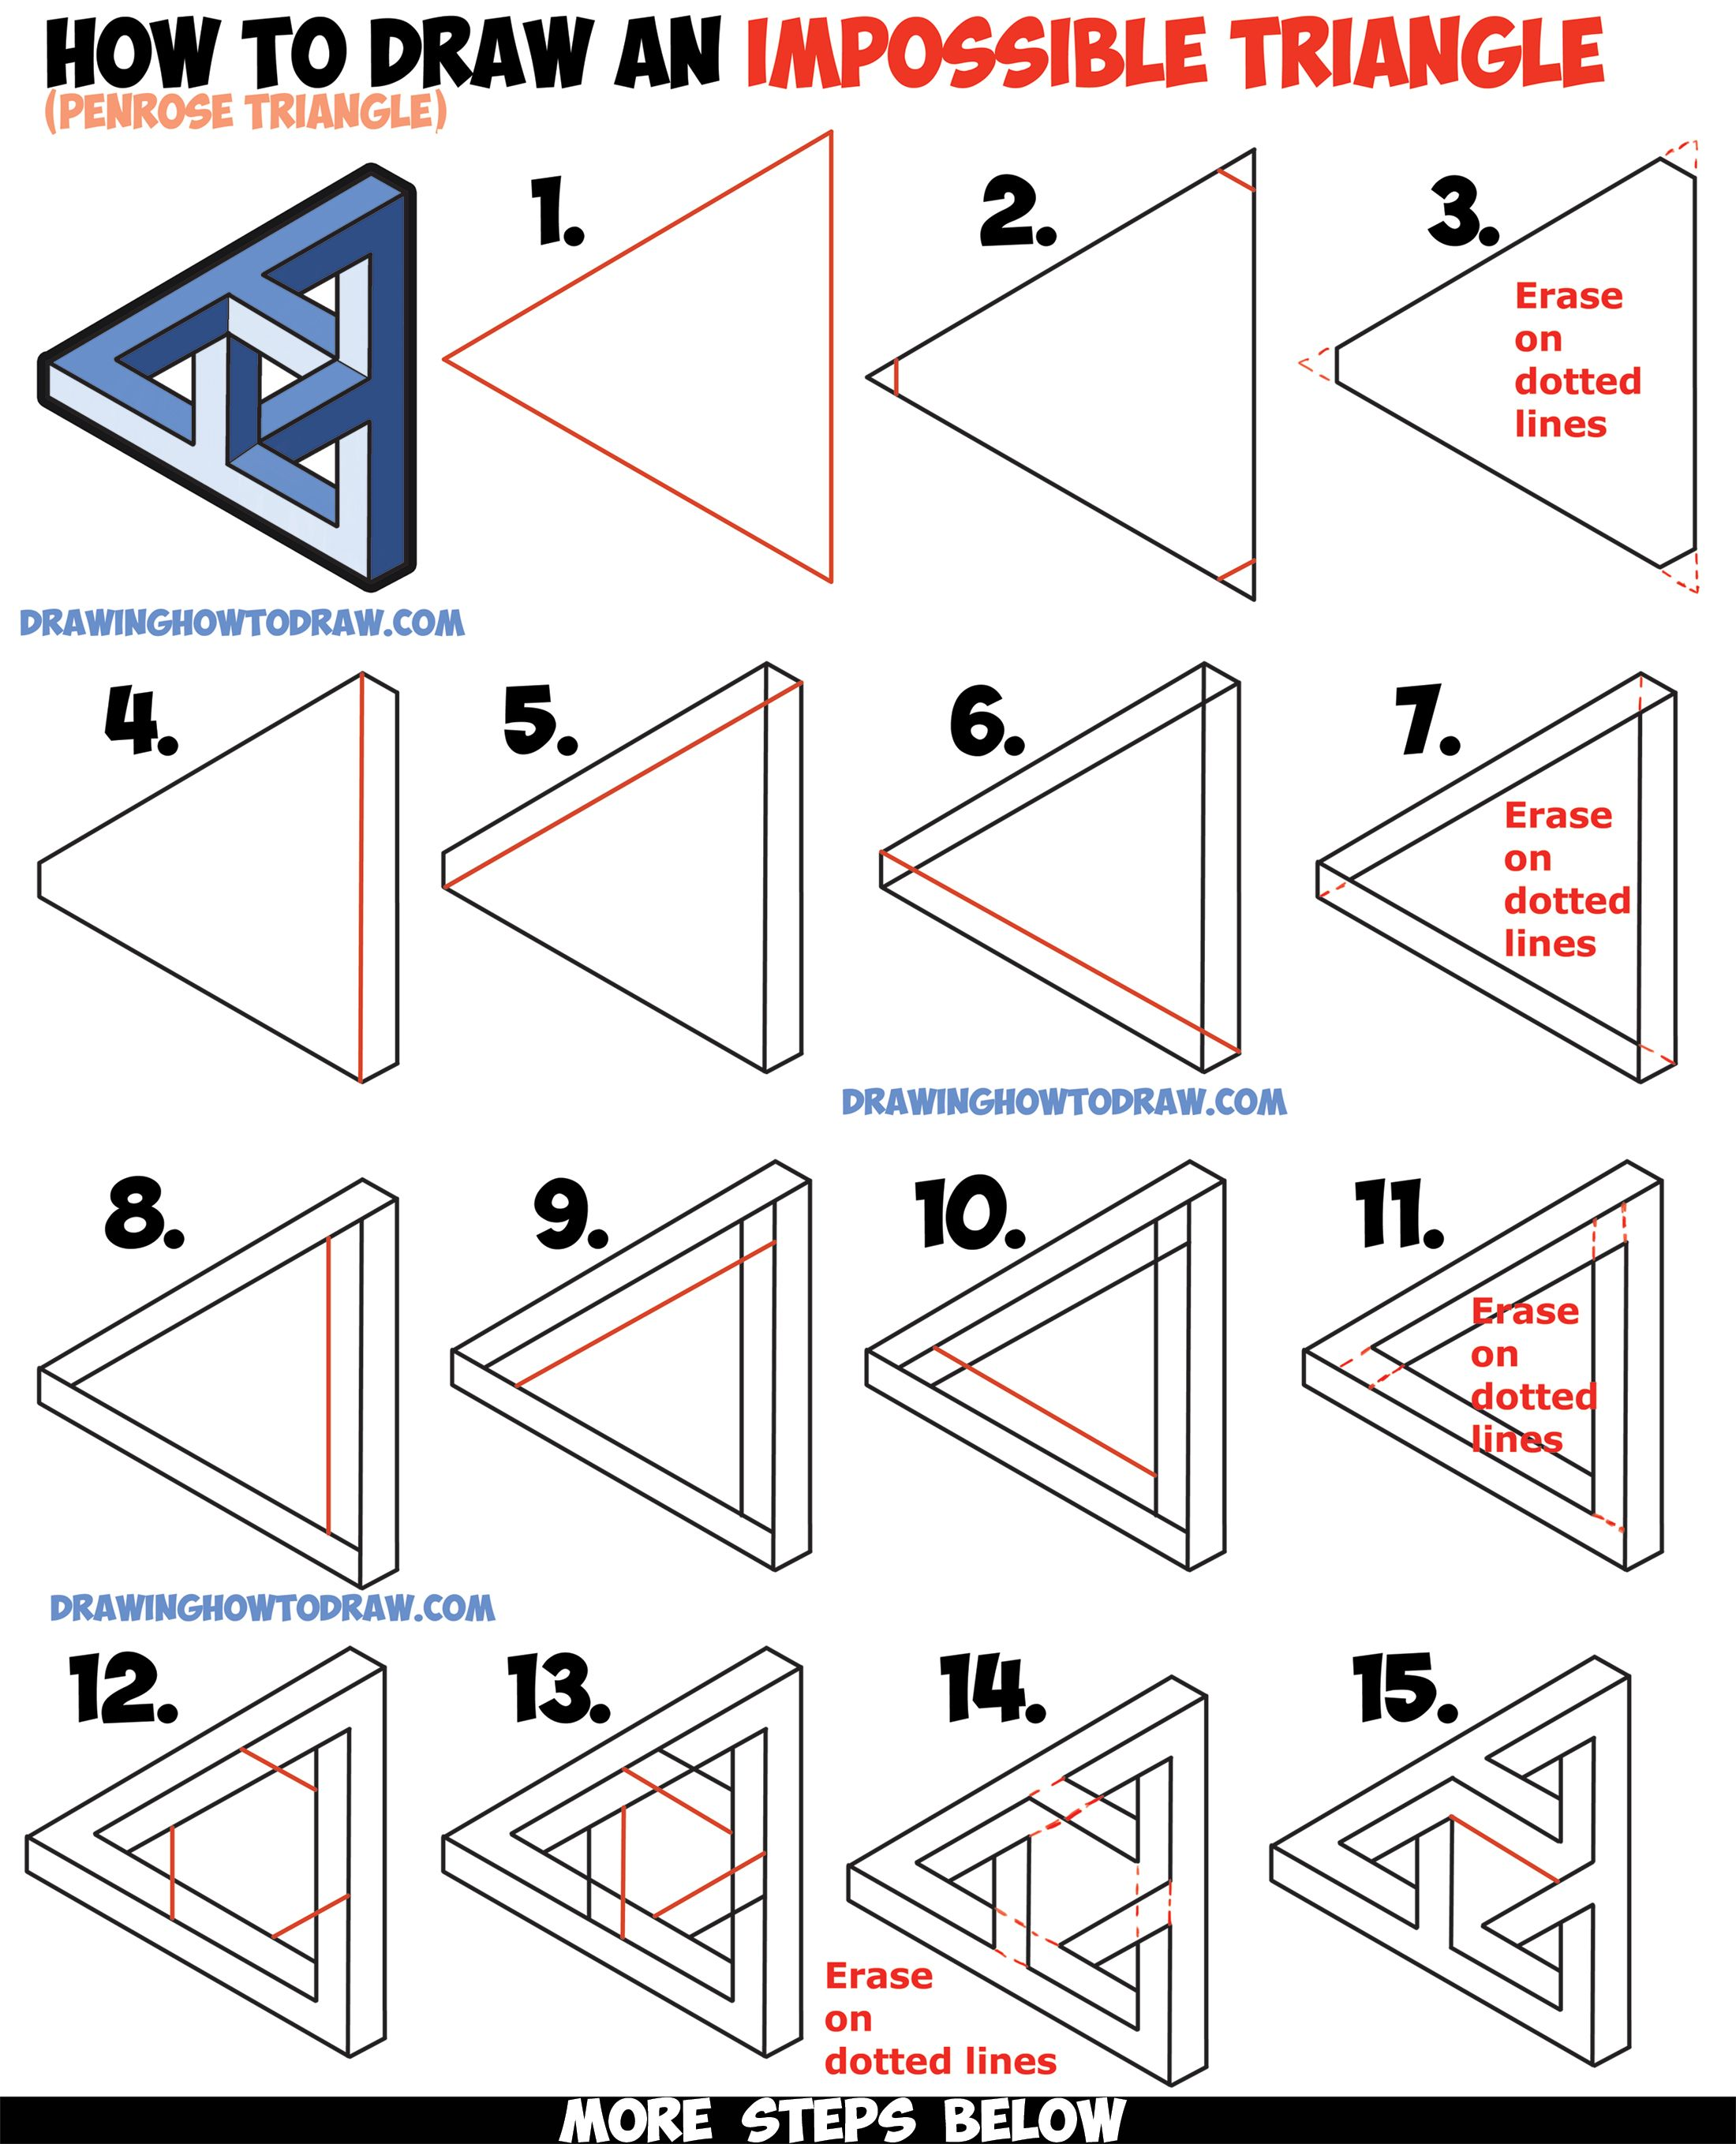 Penrose triangle: paper hands 80